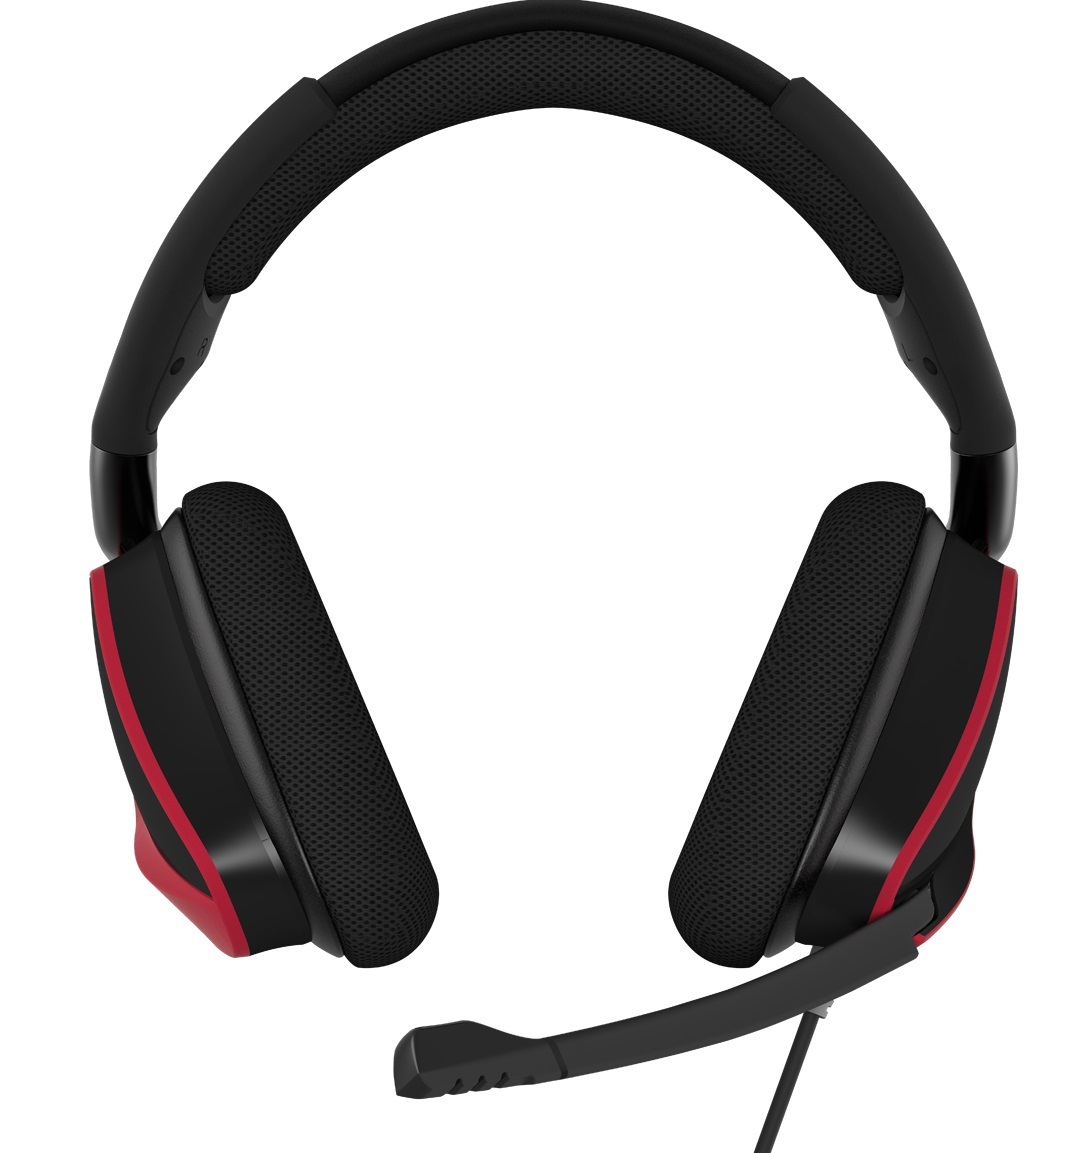 Corsair Void Elite Surround Gaming Headset (Red) for PC image